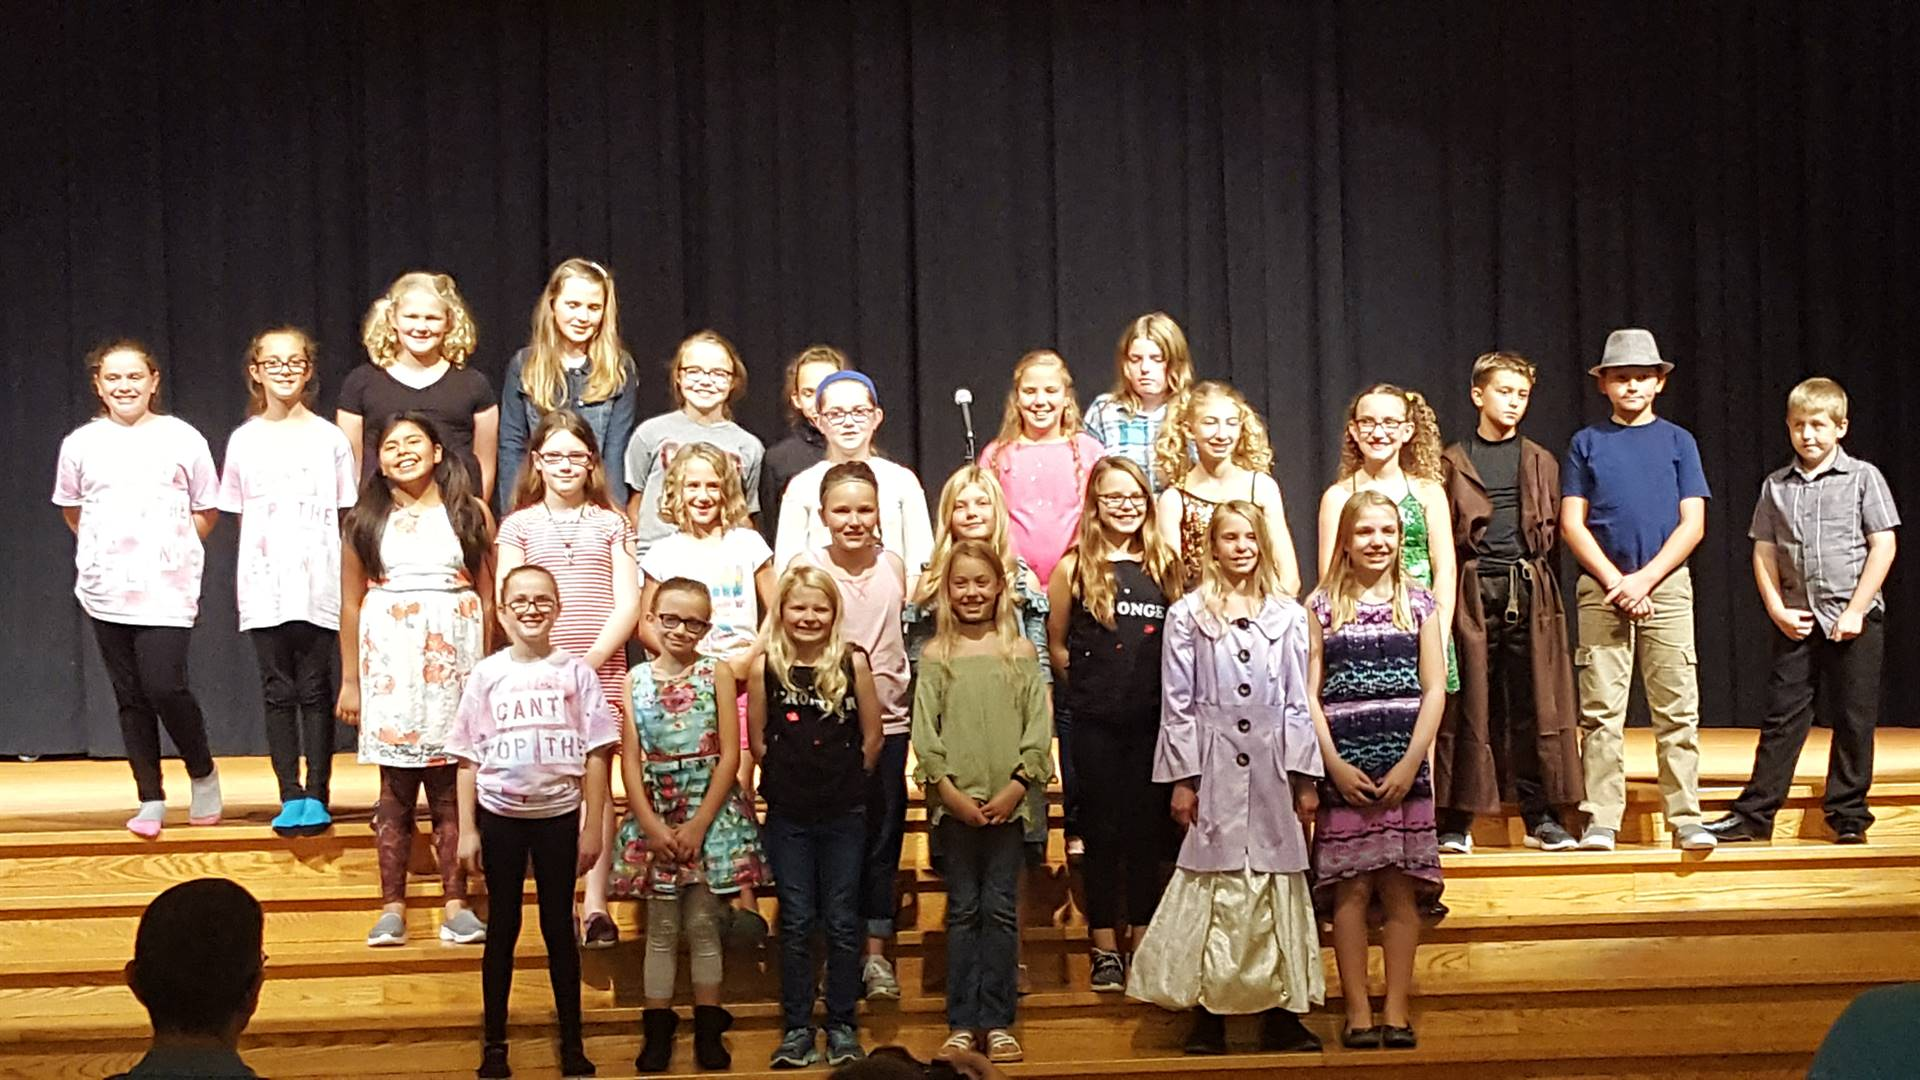 Talent Show Performers